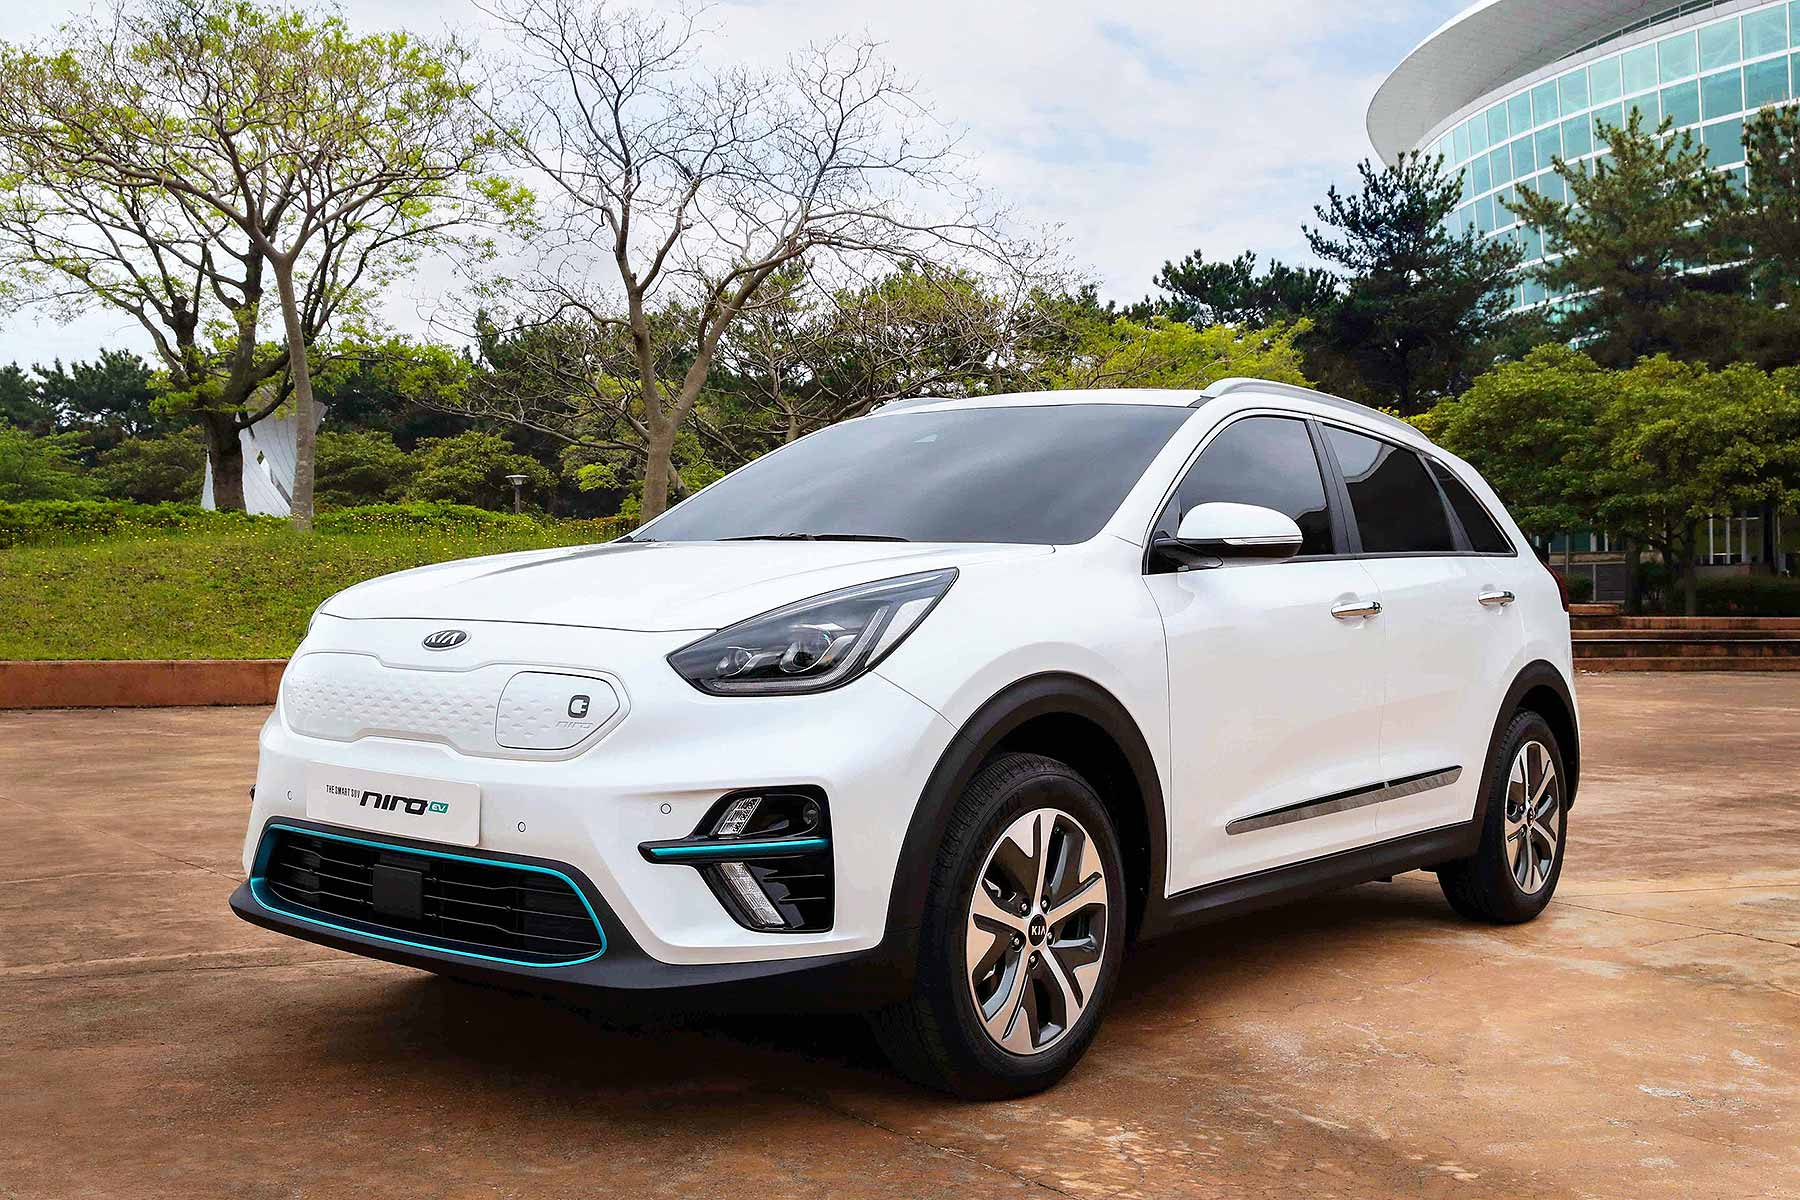 kia e niro electric crossover confirmed with 301 mile range motoring research. Black Bedroom Furniture Sets. Home Design Ideas